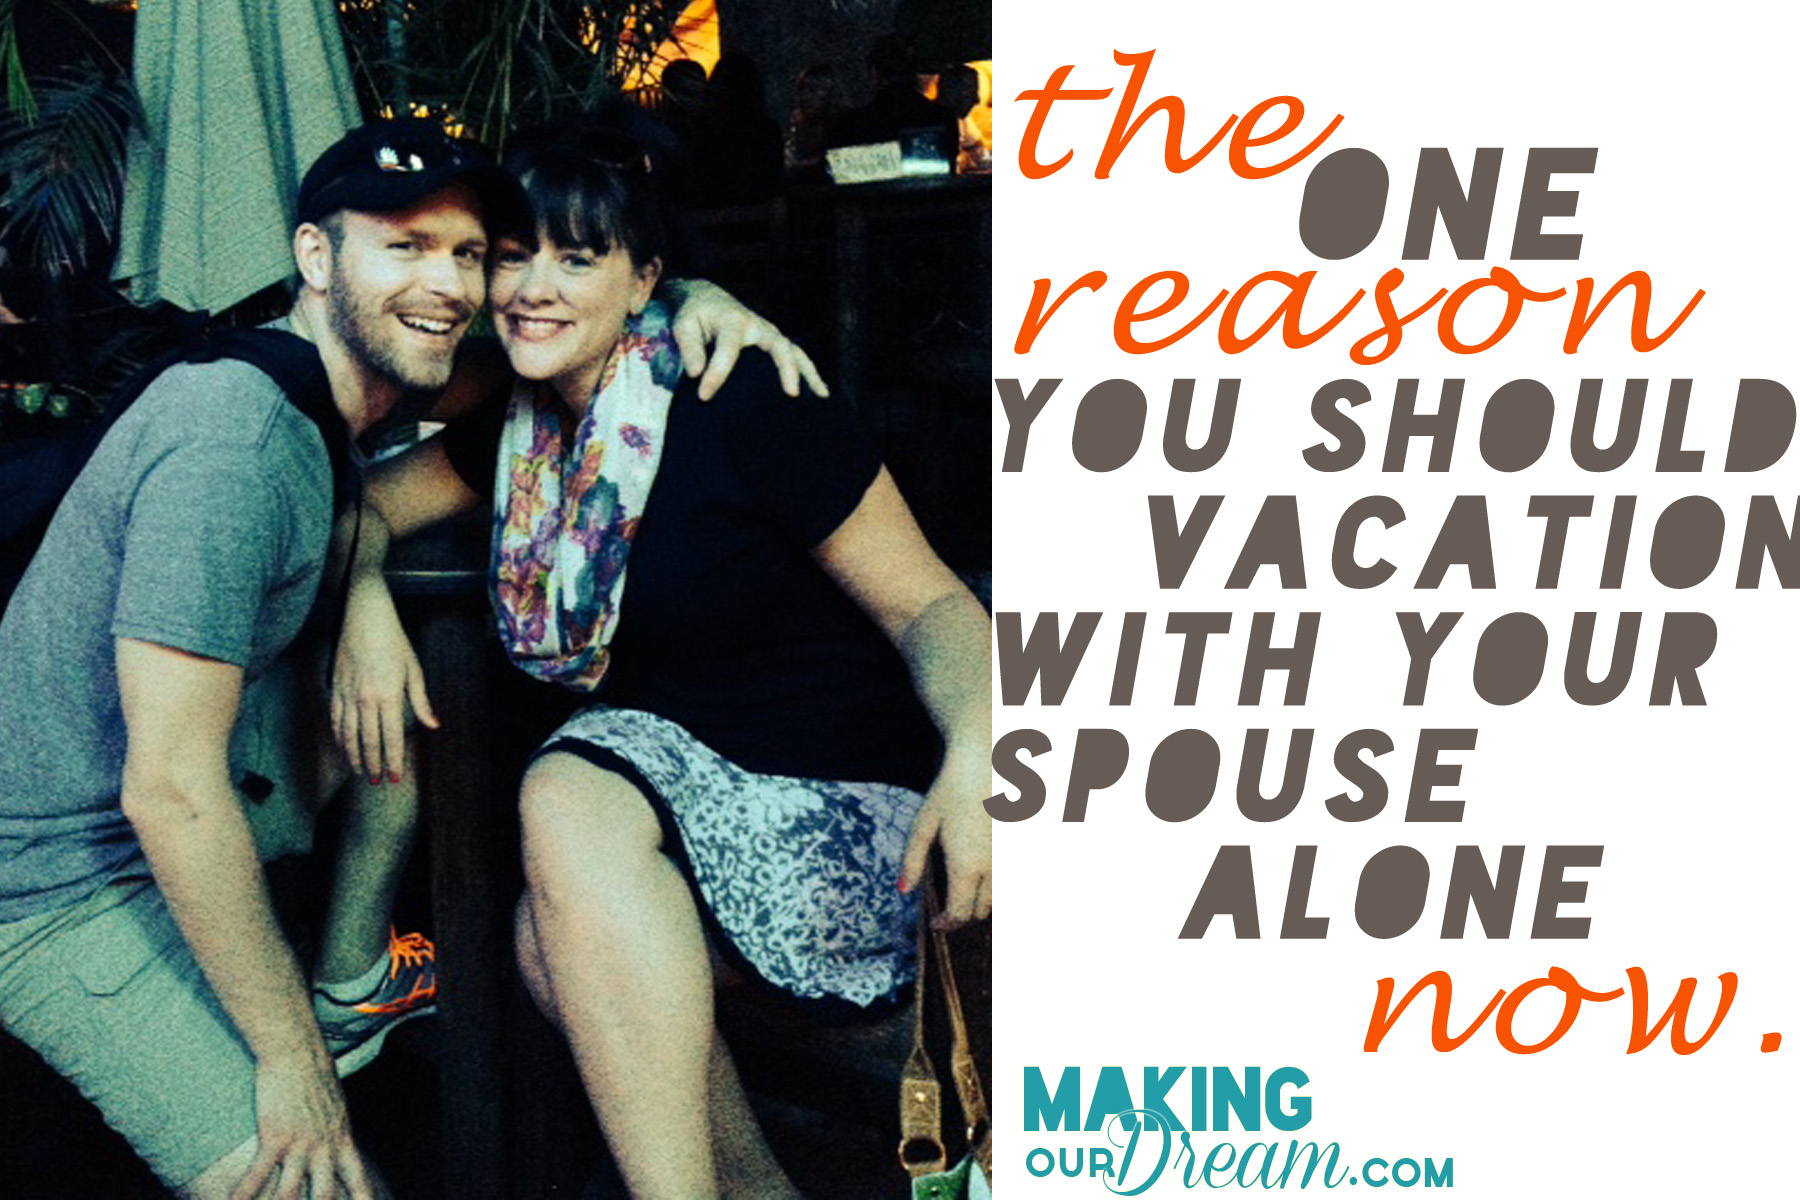 The 1 Reason You Should go on a Vacation ALONE with your spouse NOW by MakingOurDream